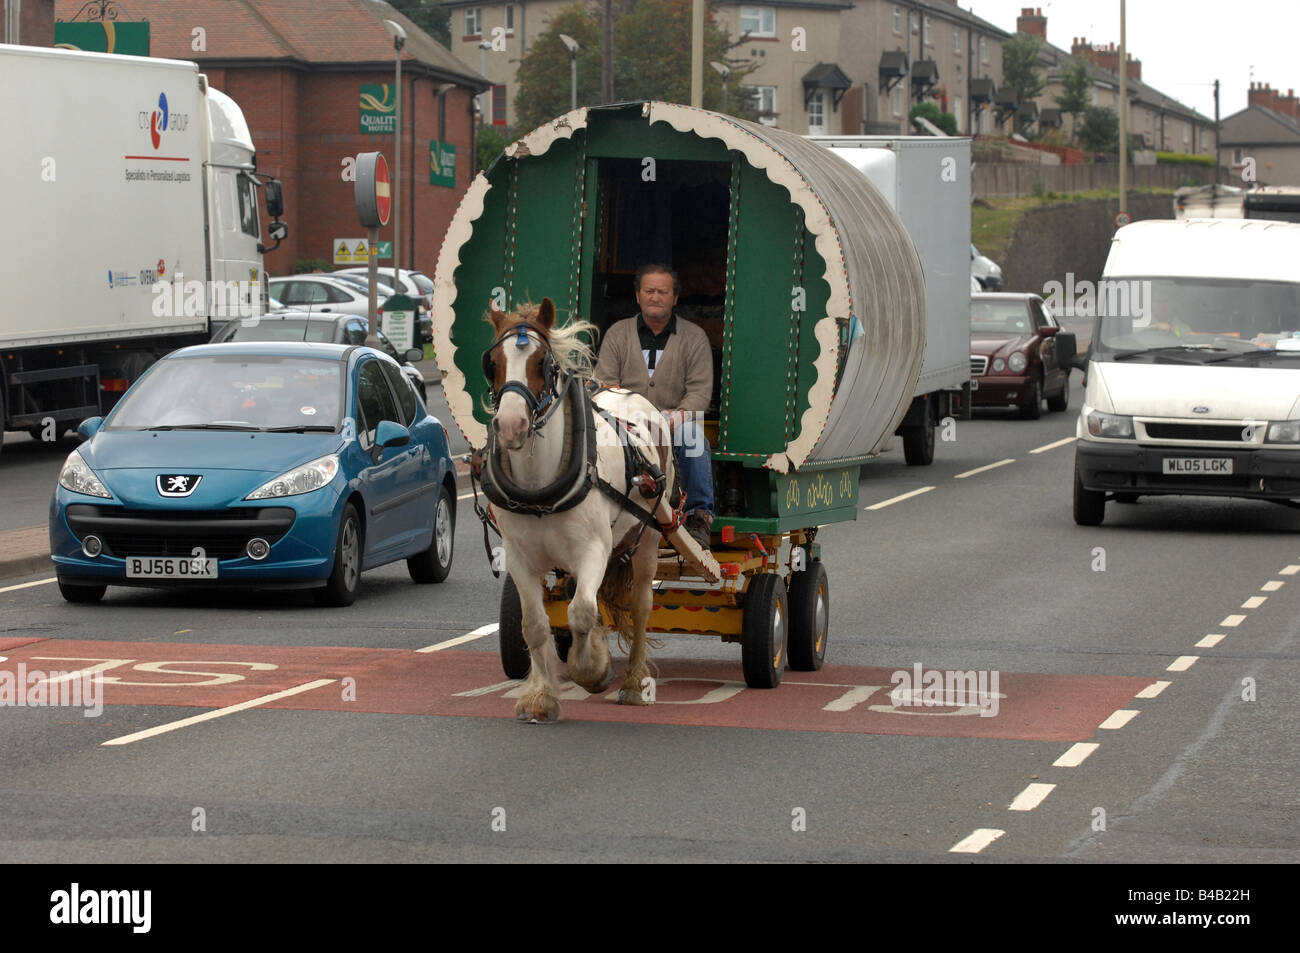 Horse drawn caravan travelling through Dudley in the West Midlands England - Stock Image